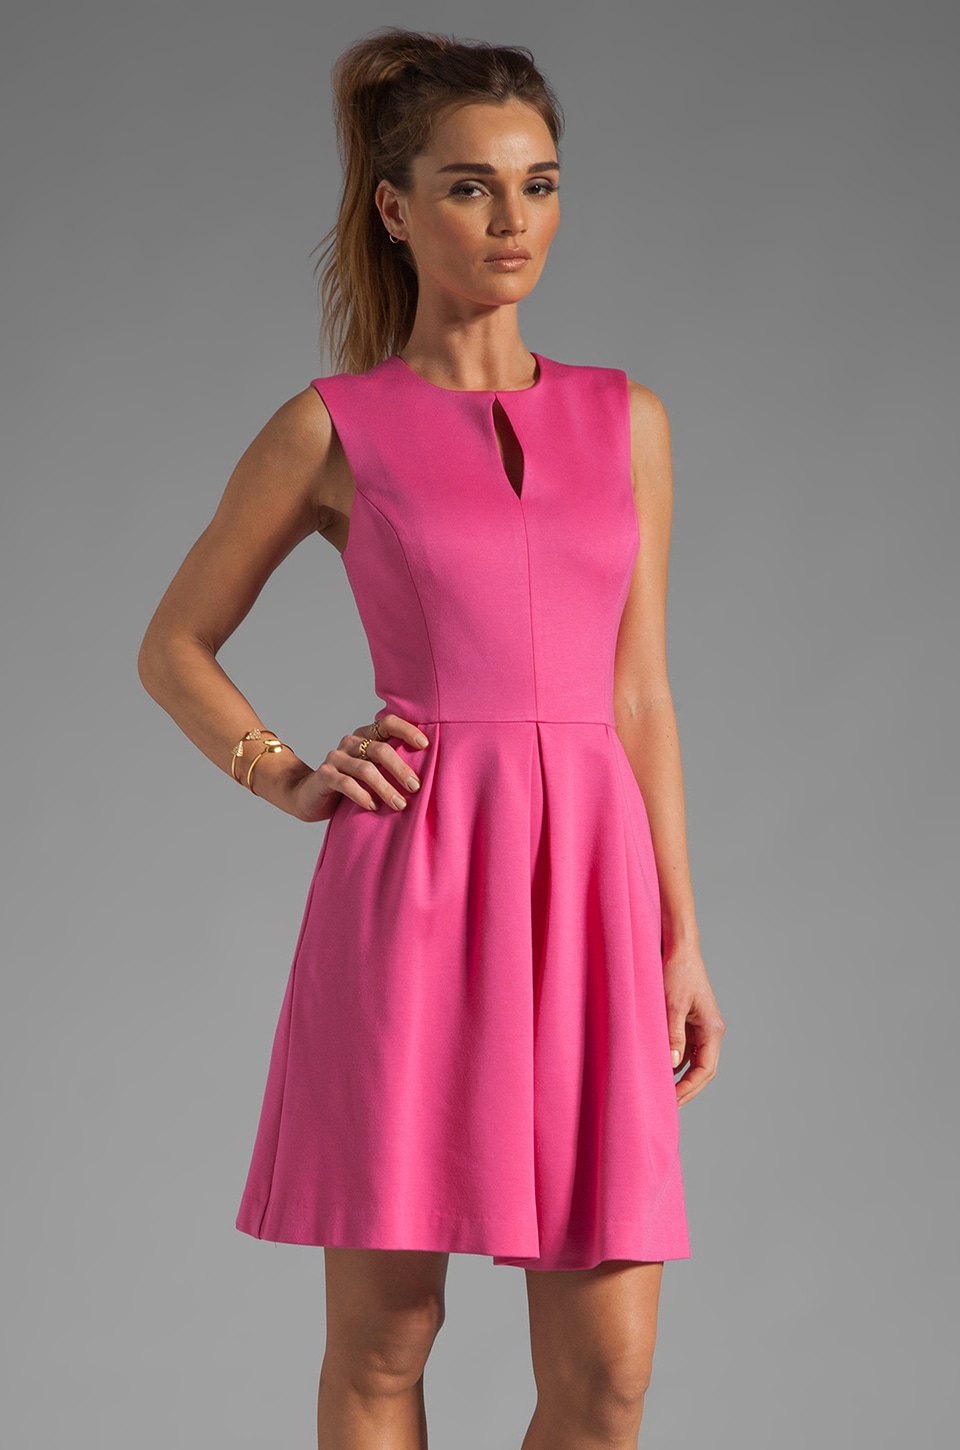 Trina Turk Sunnie Dress in Pink Swizzle